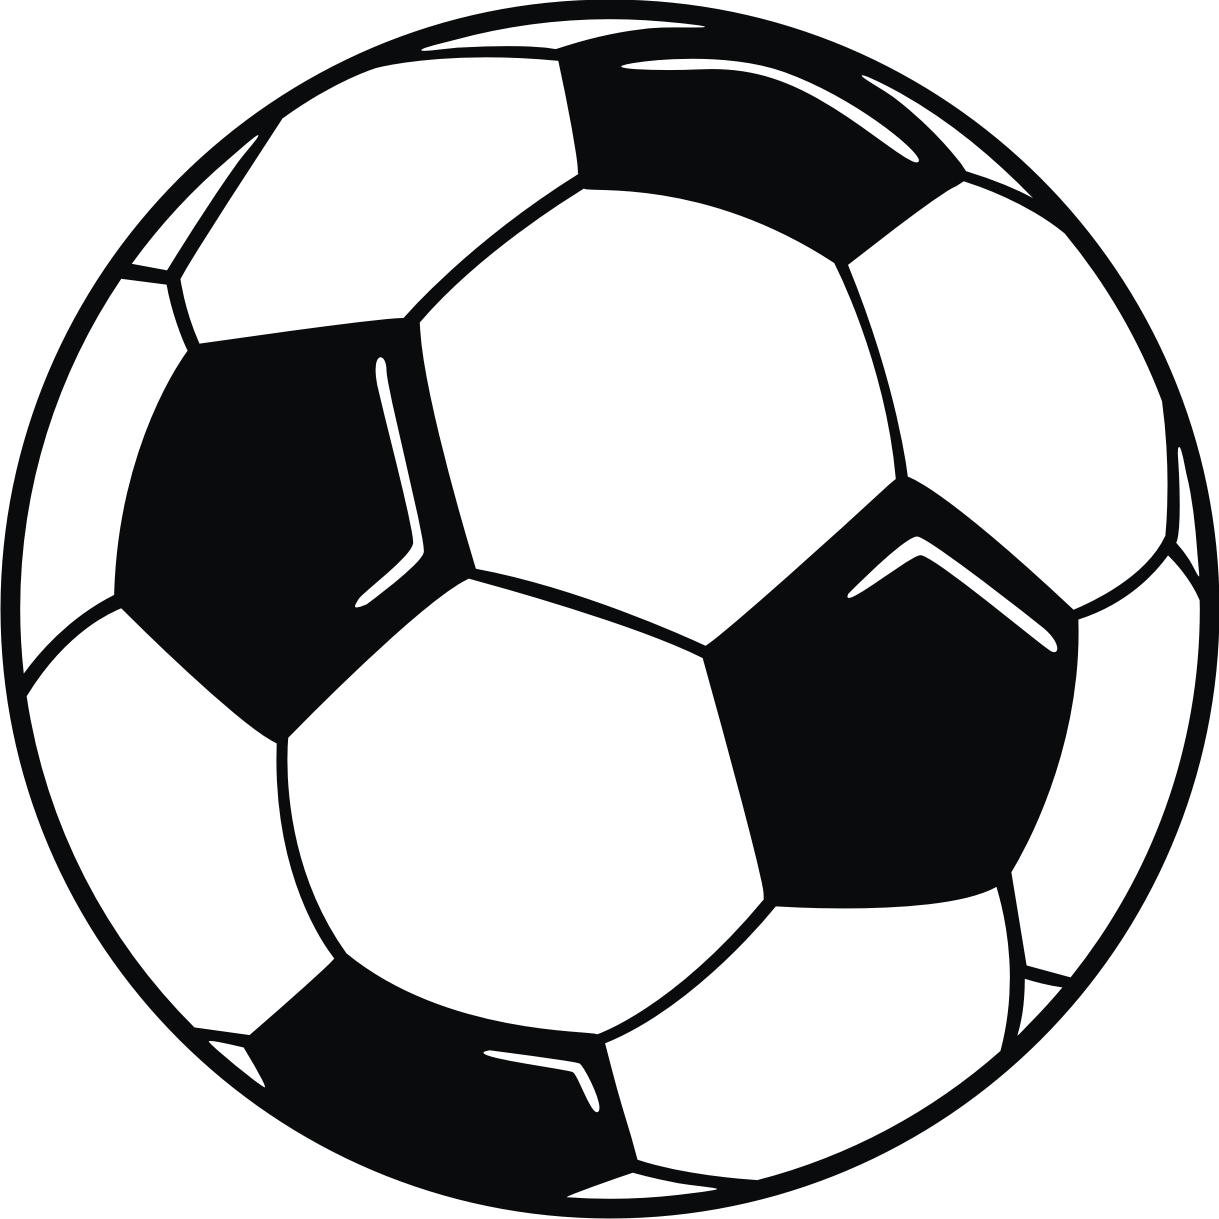 Soccer clipart vector graphic royalty free stock Free Soccer Vector Art, Download Free Clip Art, Free Clip ... graphic royalty free stock